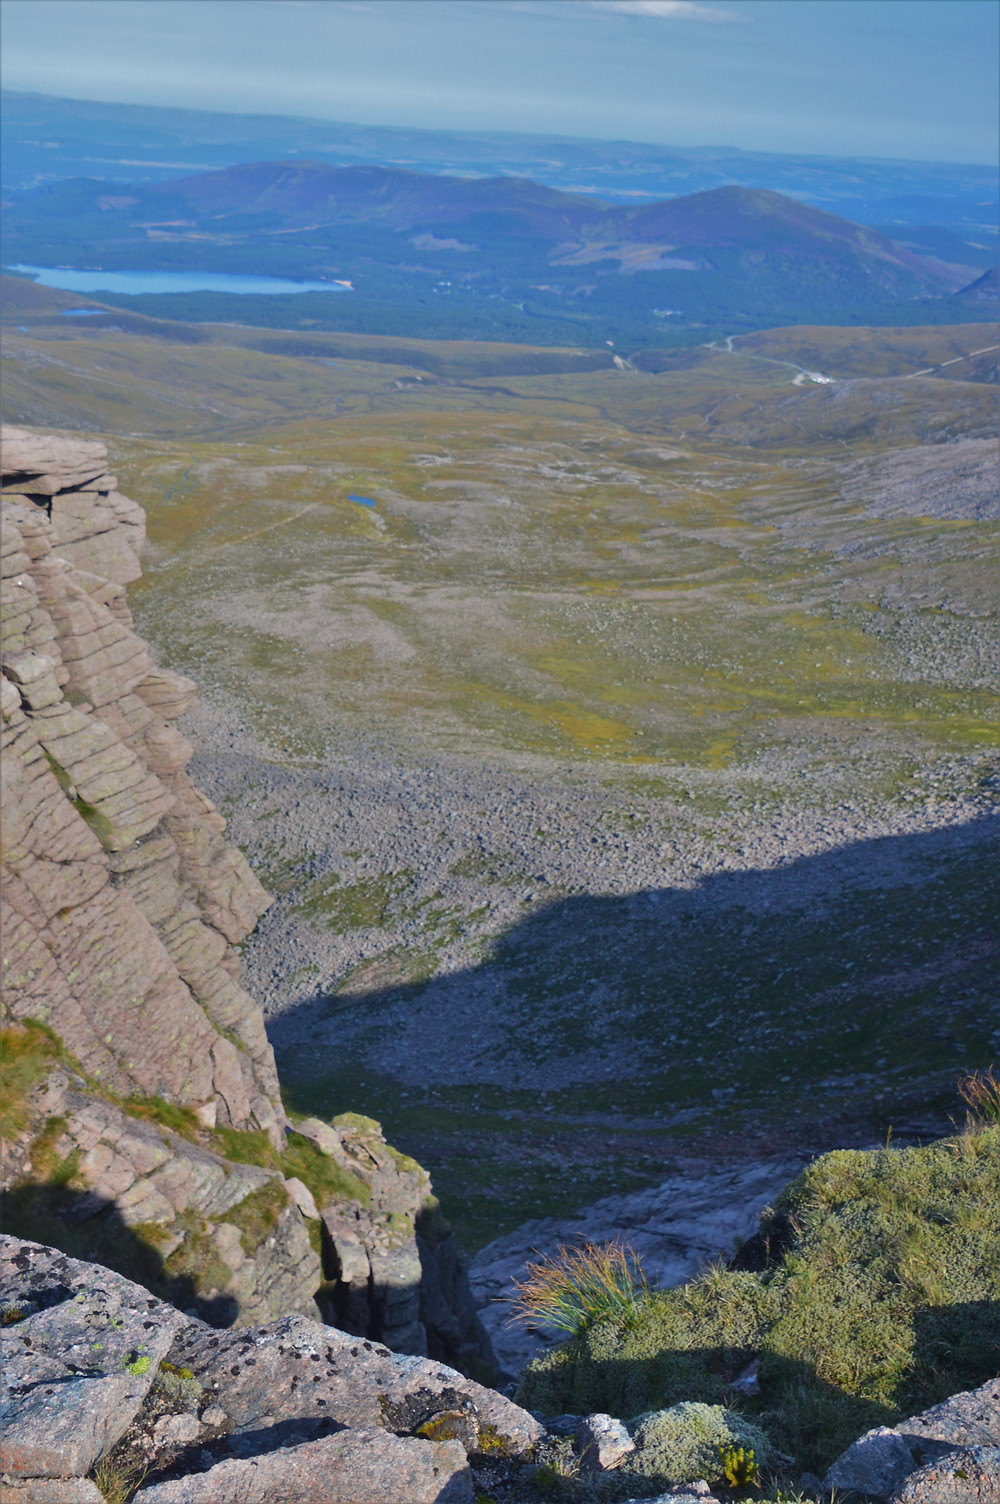 Great scenic view from the ridge trail over the cliffs of Cairn Lochan and into the basin of Coire an Lochain.